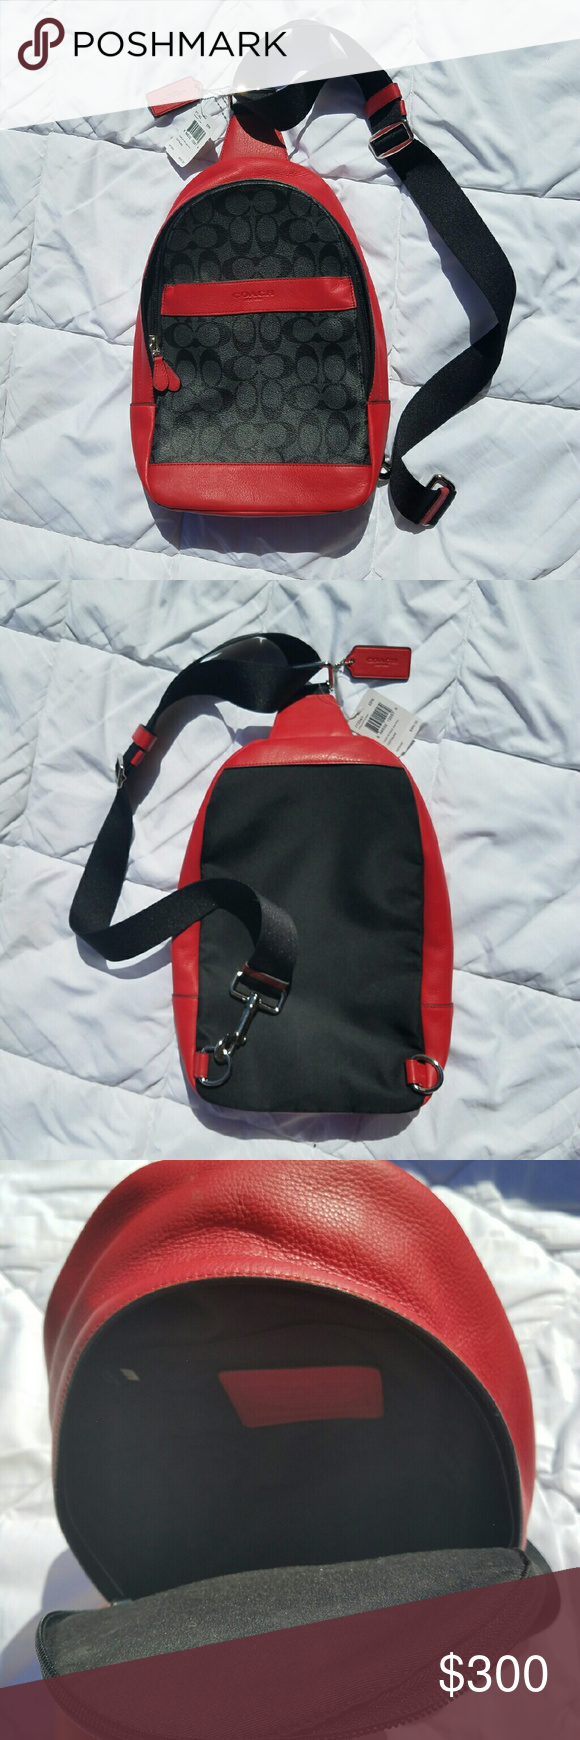 NWT COACH BACKPACK / MESSENGER BAG RED BLACK Awesome, i bought it to ride on my motorcycle, but just bought a backpack with 2 straps vs. The one.   My loss your gain..   Thanks! Coach Bags Backpacks